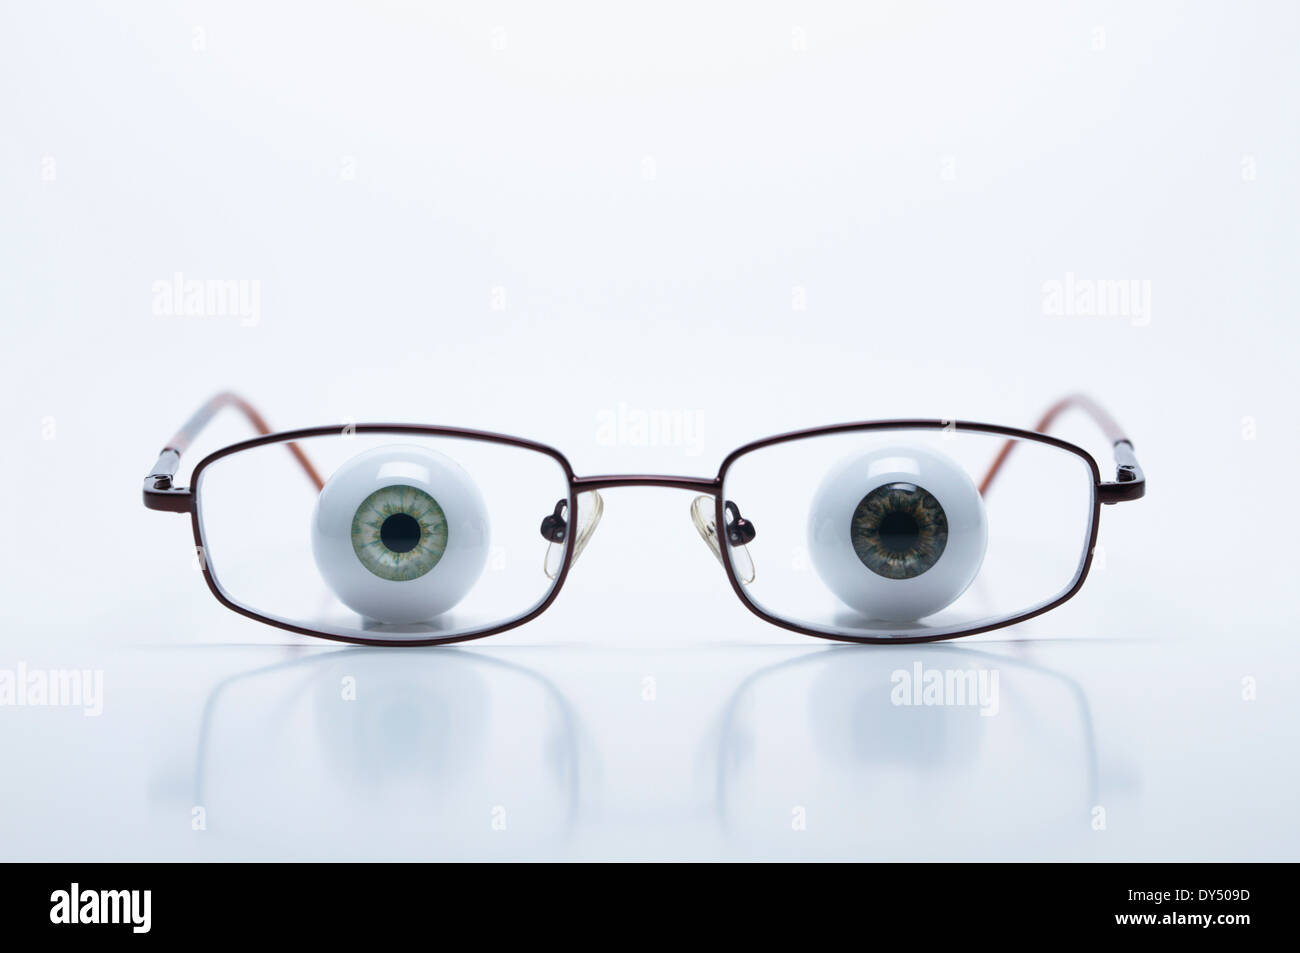 Model eyeballs behind spectacles with myopic (negative) lenses - Stock Image